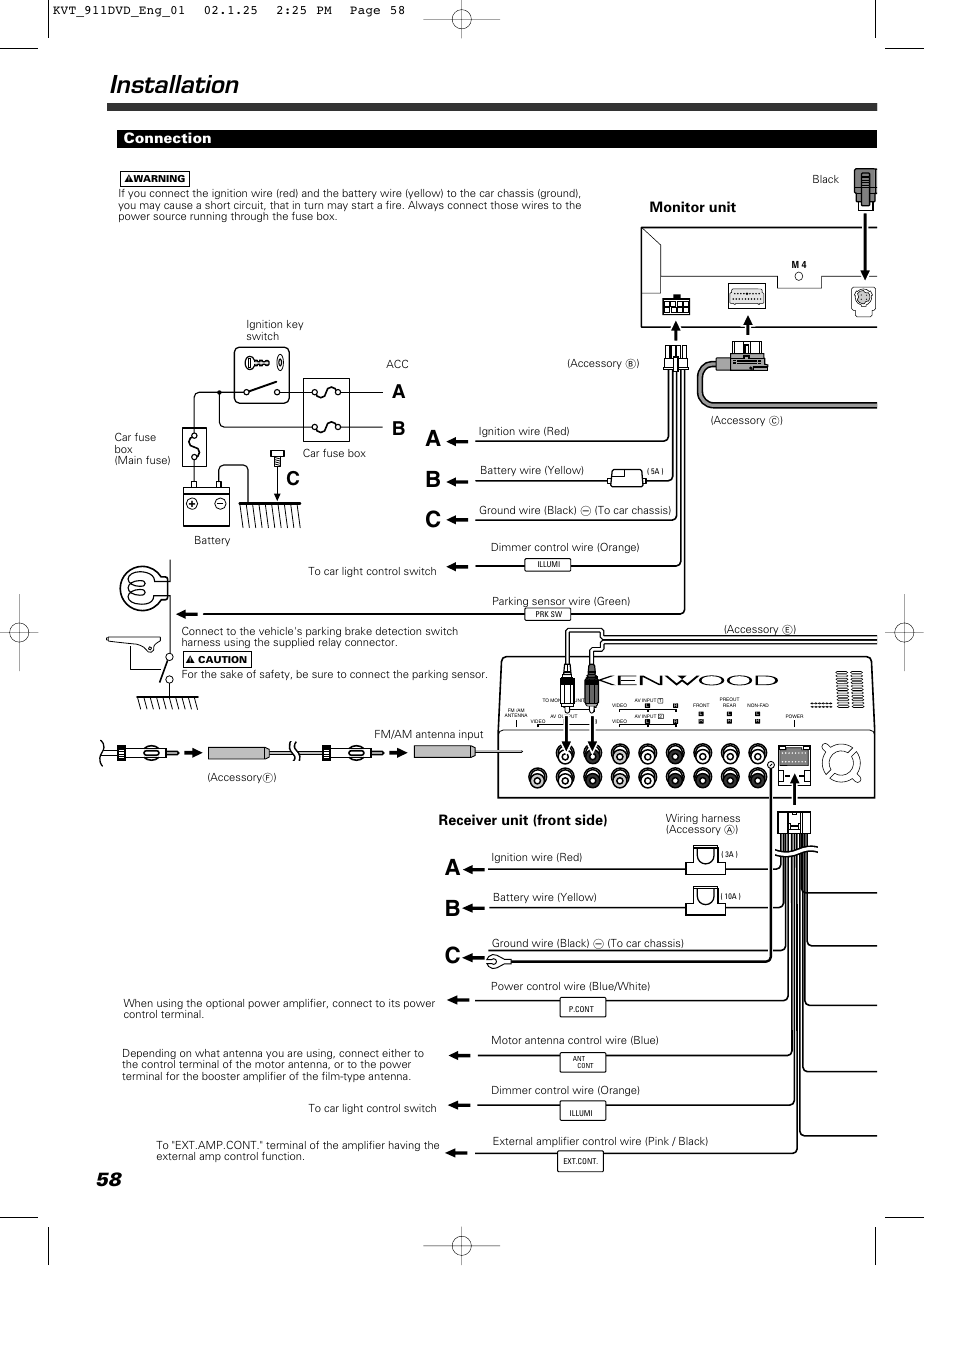 kenwood kvt 911dvd page58 kenwood kvt 512 wiring diagram wiring diagram kenwood kvt-911dvd wiring harness at edmiracle.co